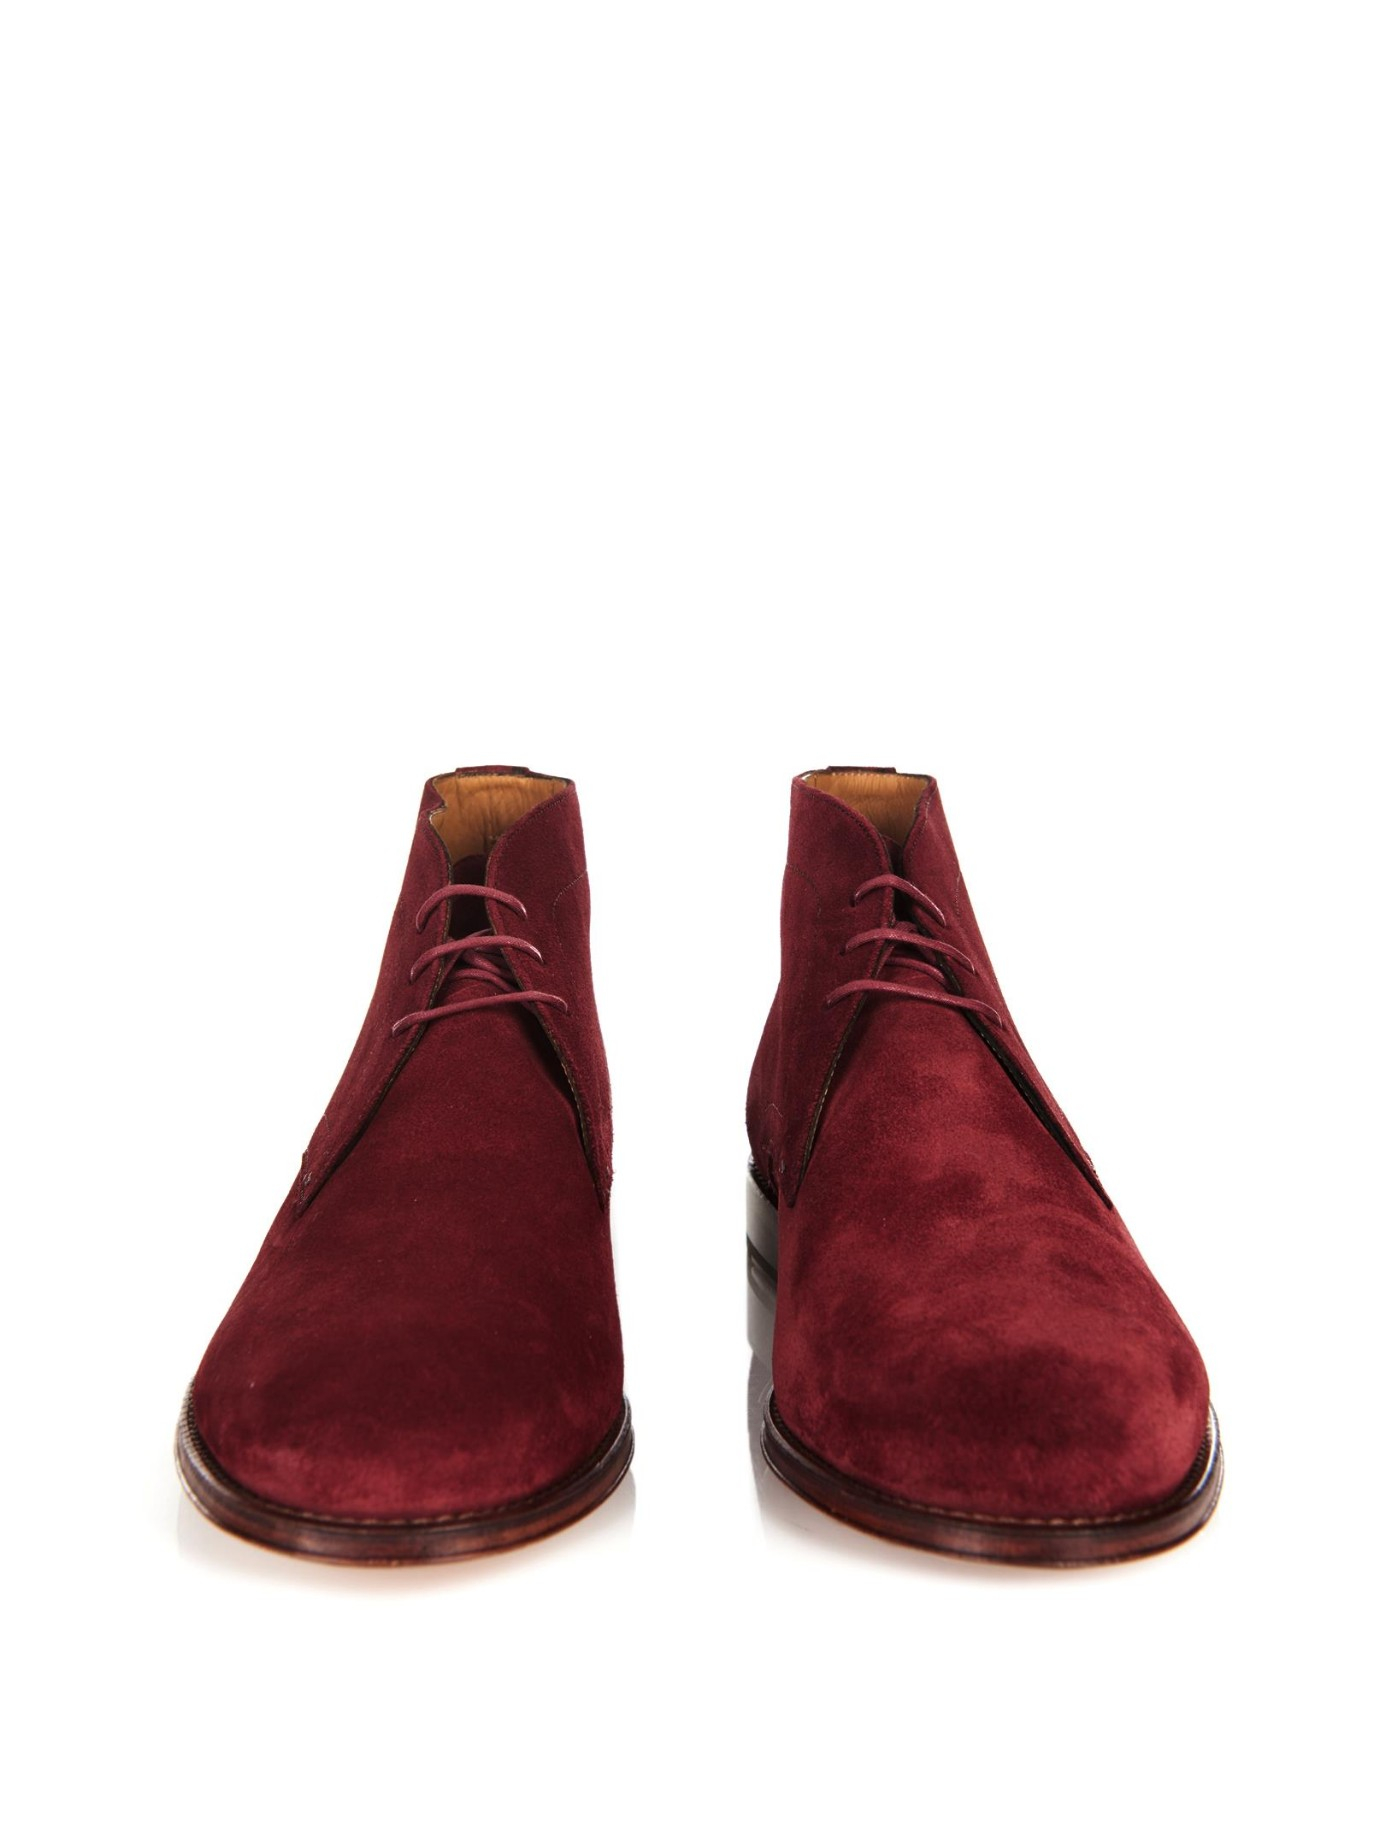 paul smith suede desert boots in purple for lyst